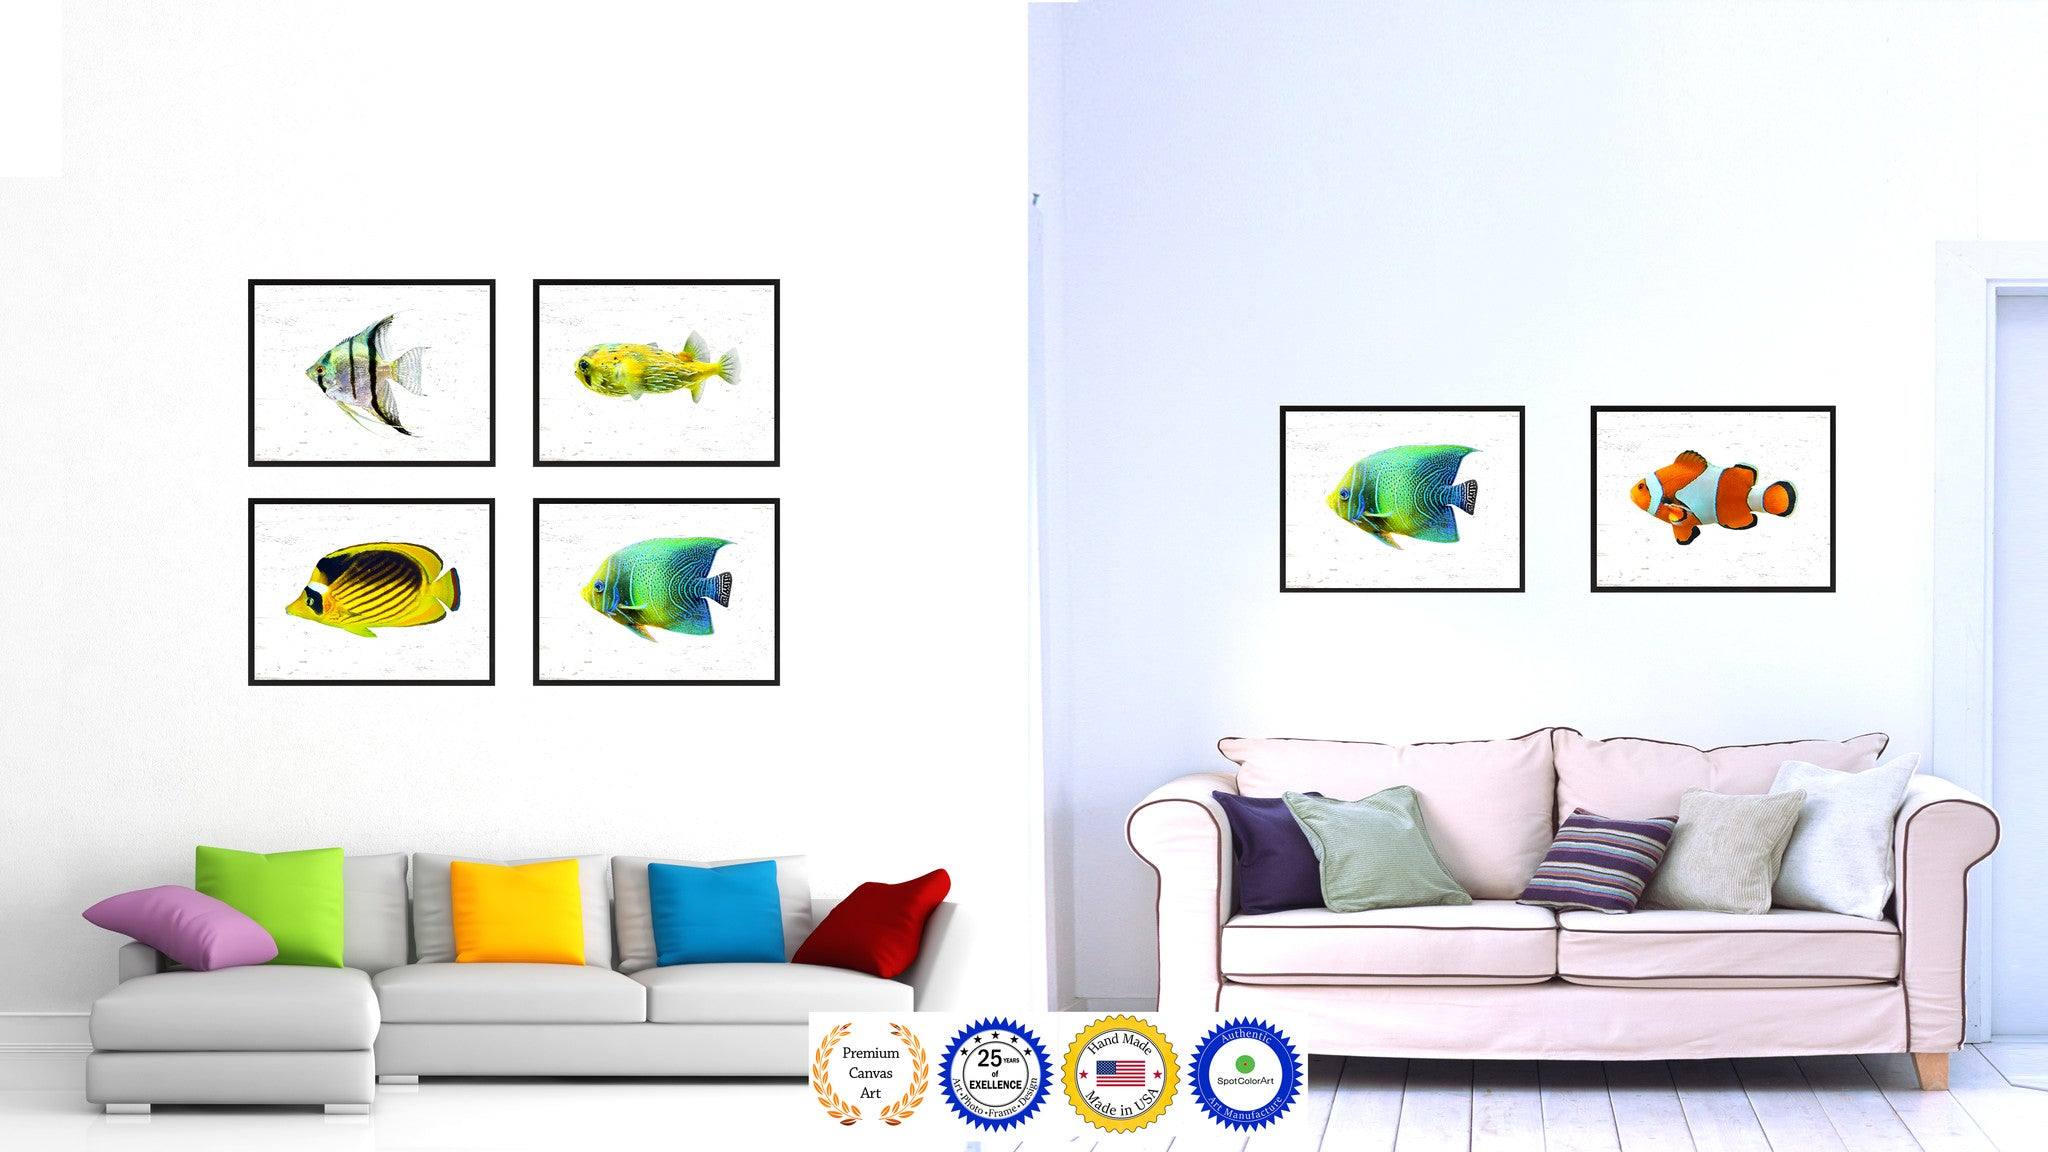 Home Decor Wall Art Aqua Tropical Fish Painting Reproduction Canvas Print Home Decor